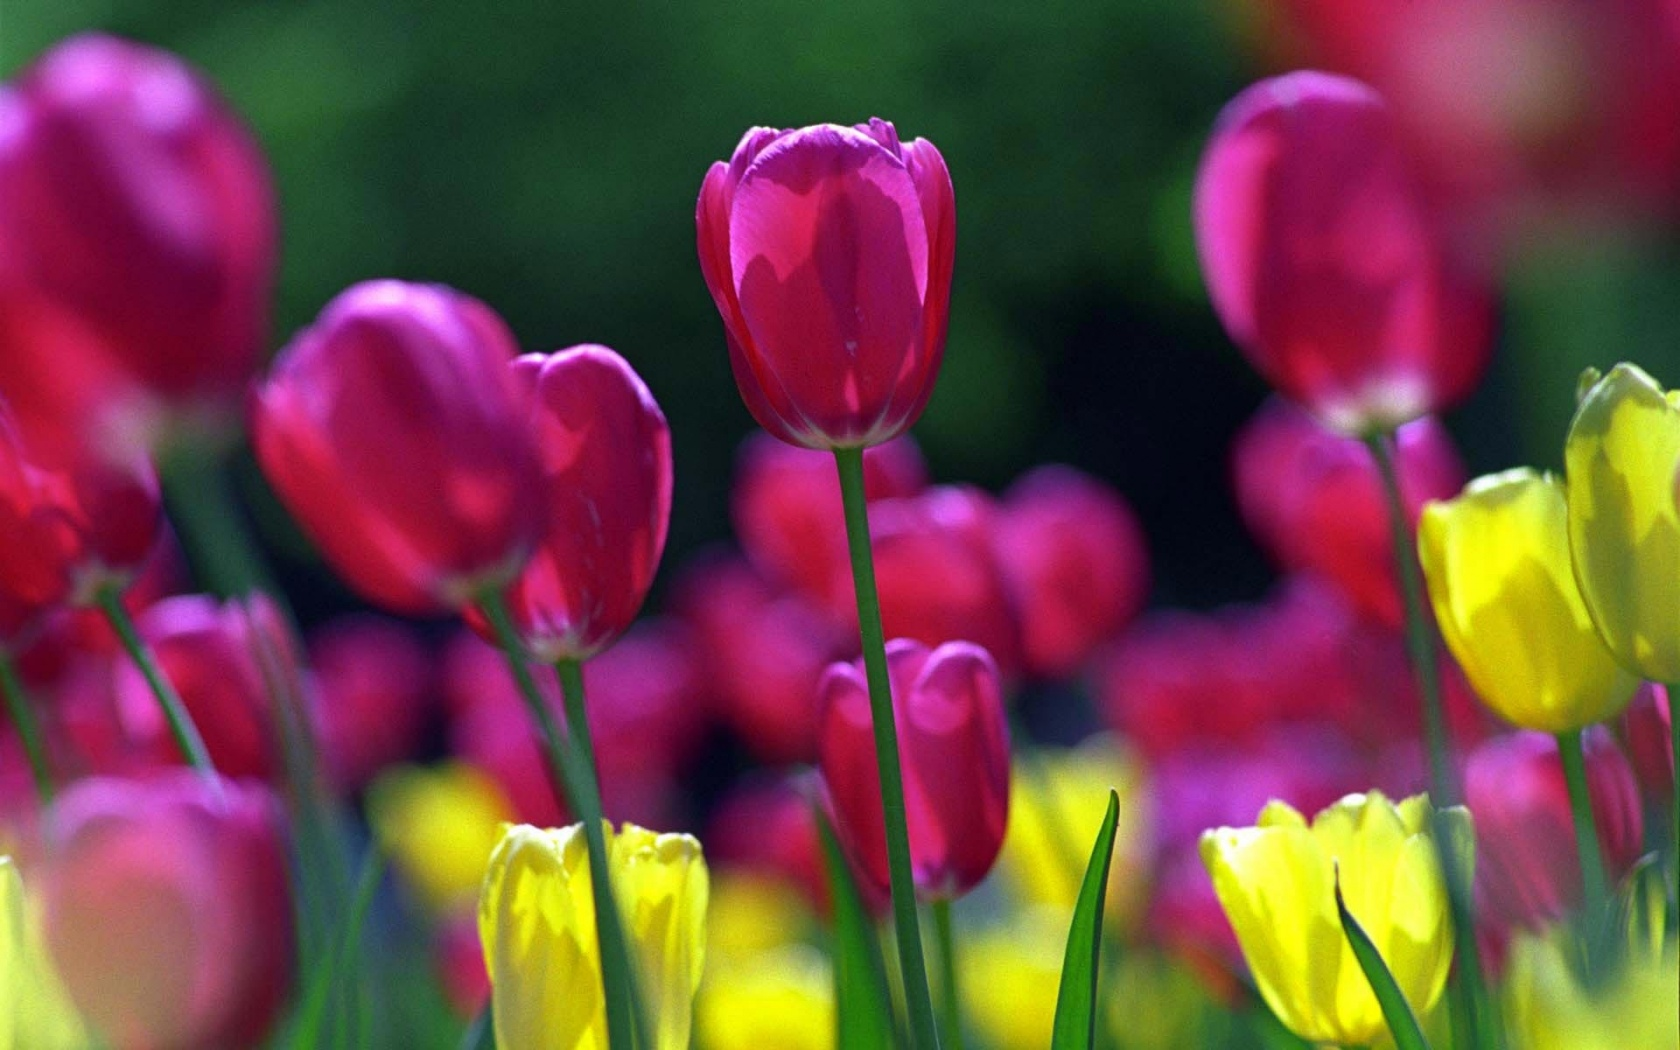 http://www.pctapety.cz/images/wallpapers/ws_Spring_tulips_1680x1050-930006.jpeg